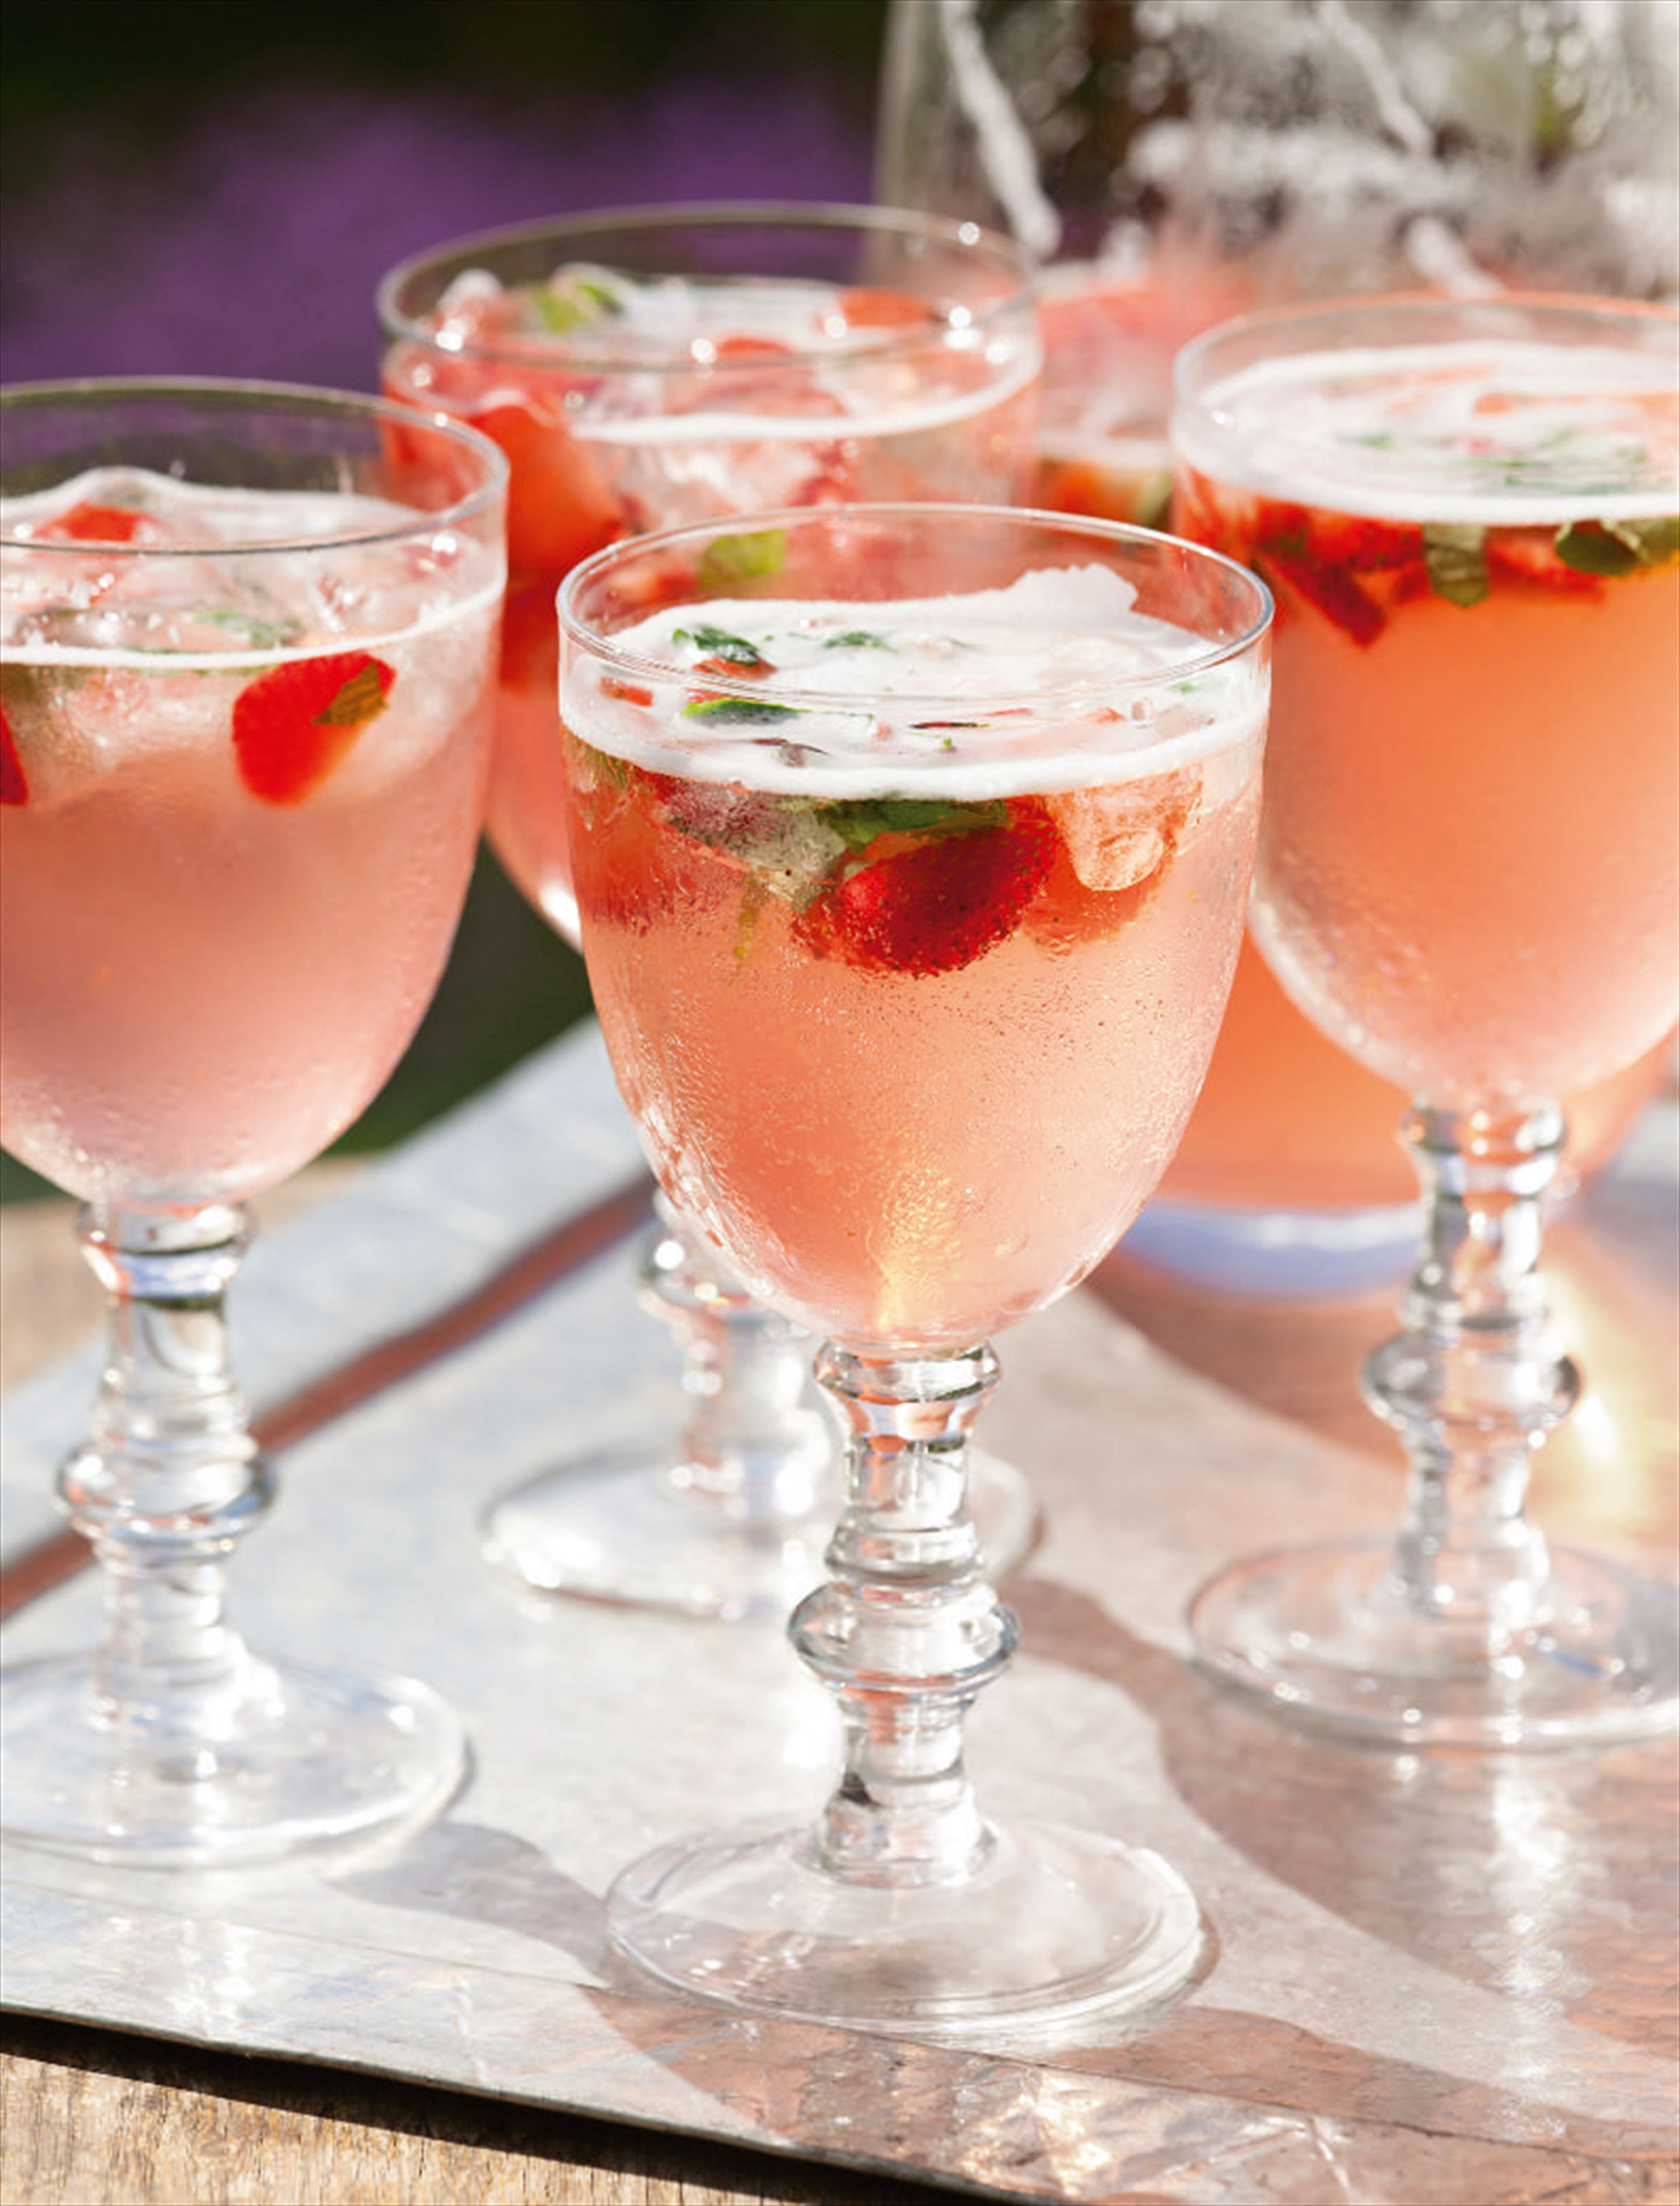 Rhubarb and strawberry cordial